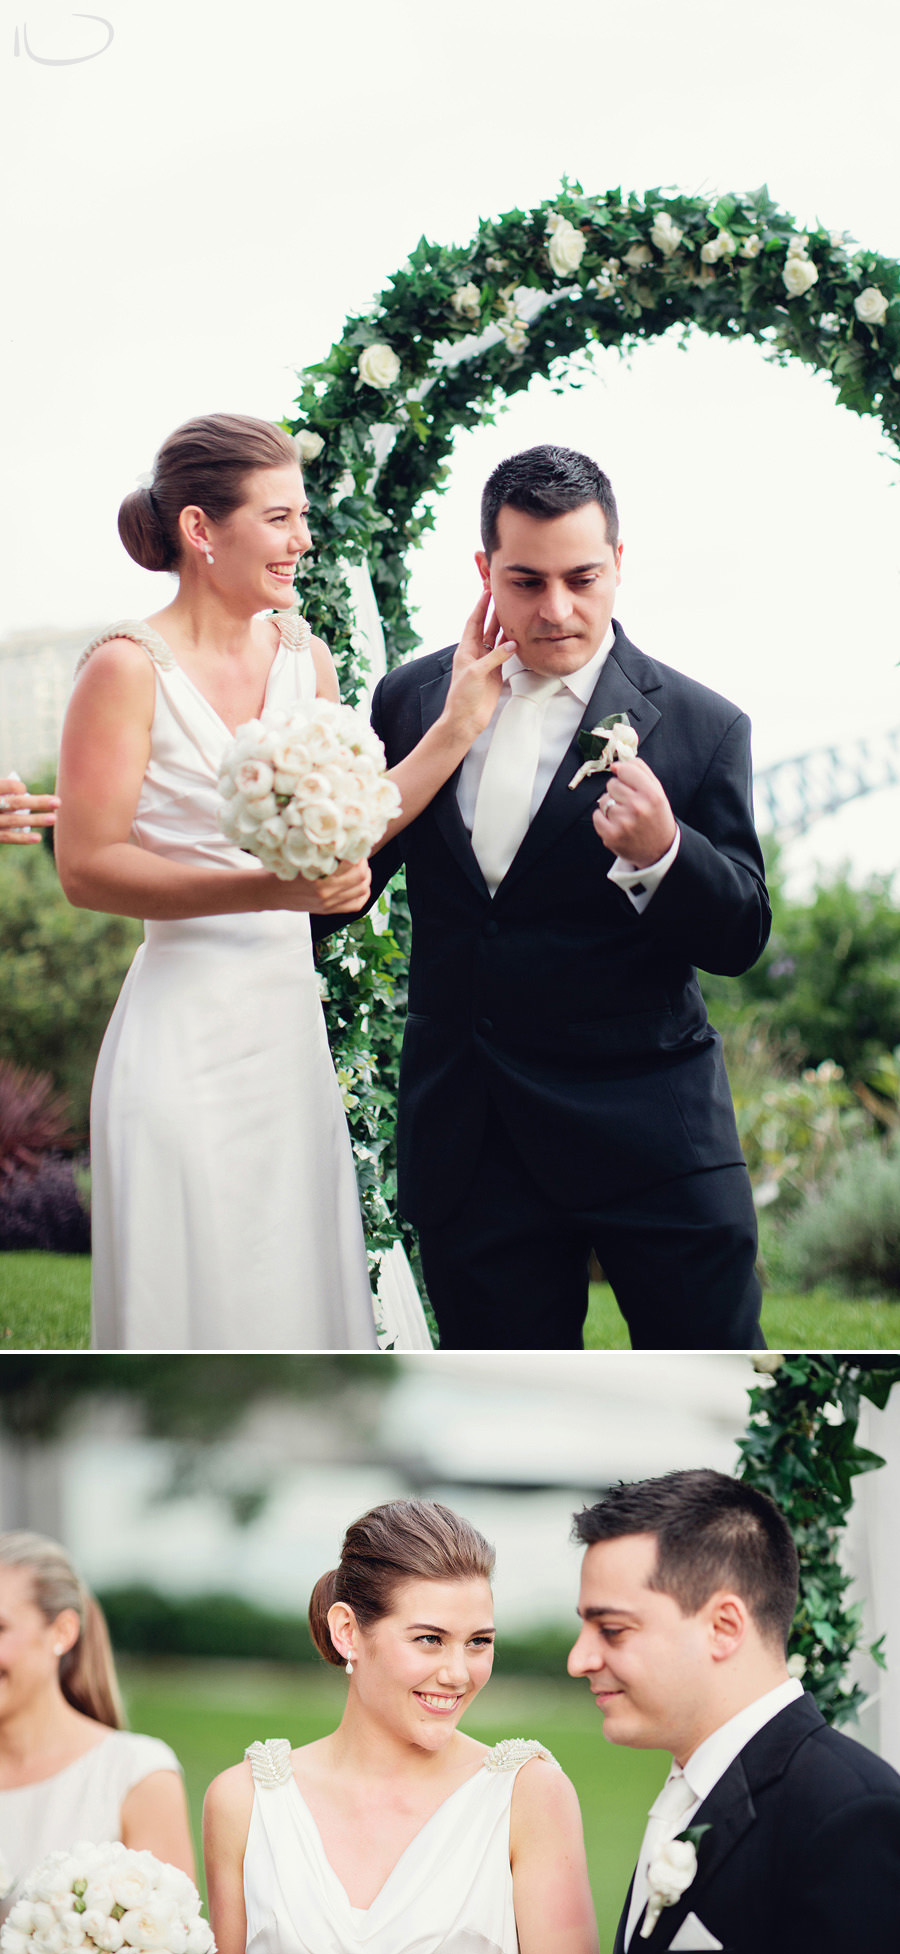 Lavender Bay Wedding Photographer: Groom winning